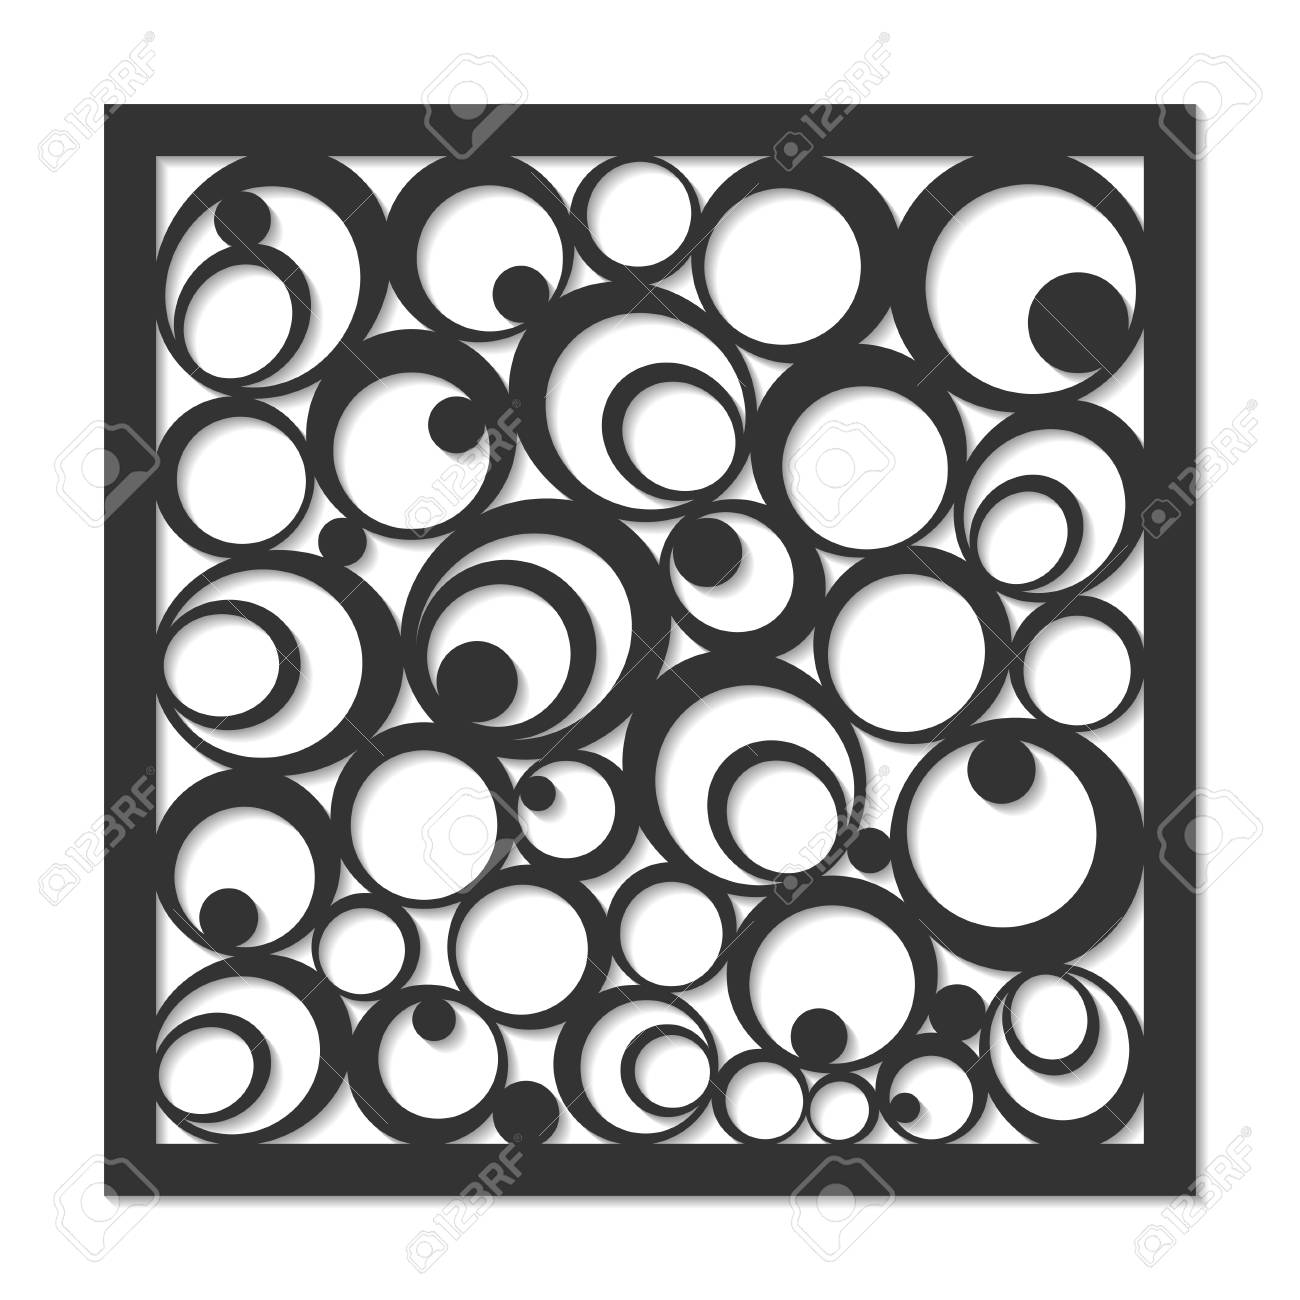 Geometric ornament template  card for laser cutting  decorative